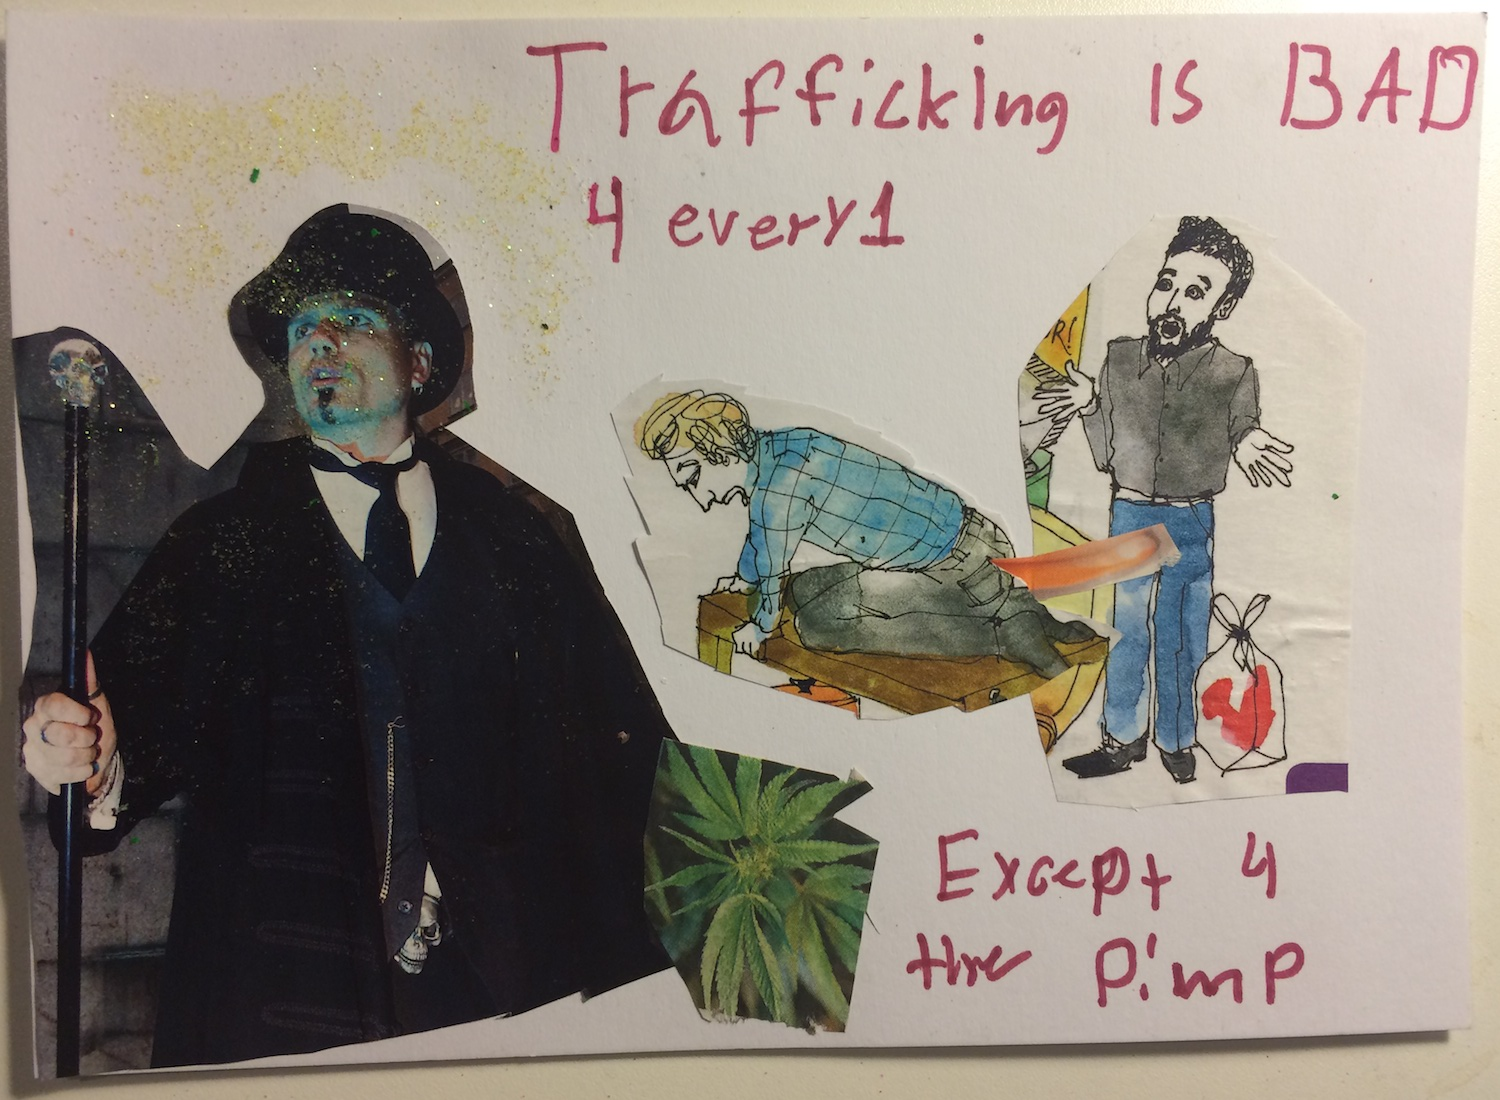 Trafficking is bad 4every1